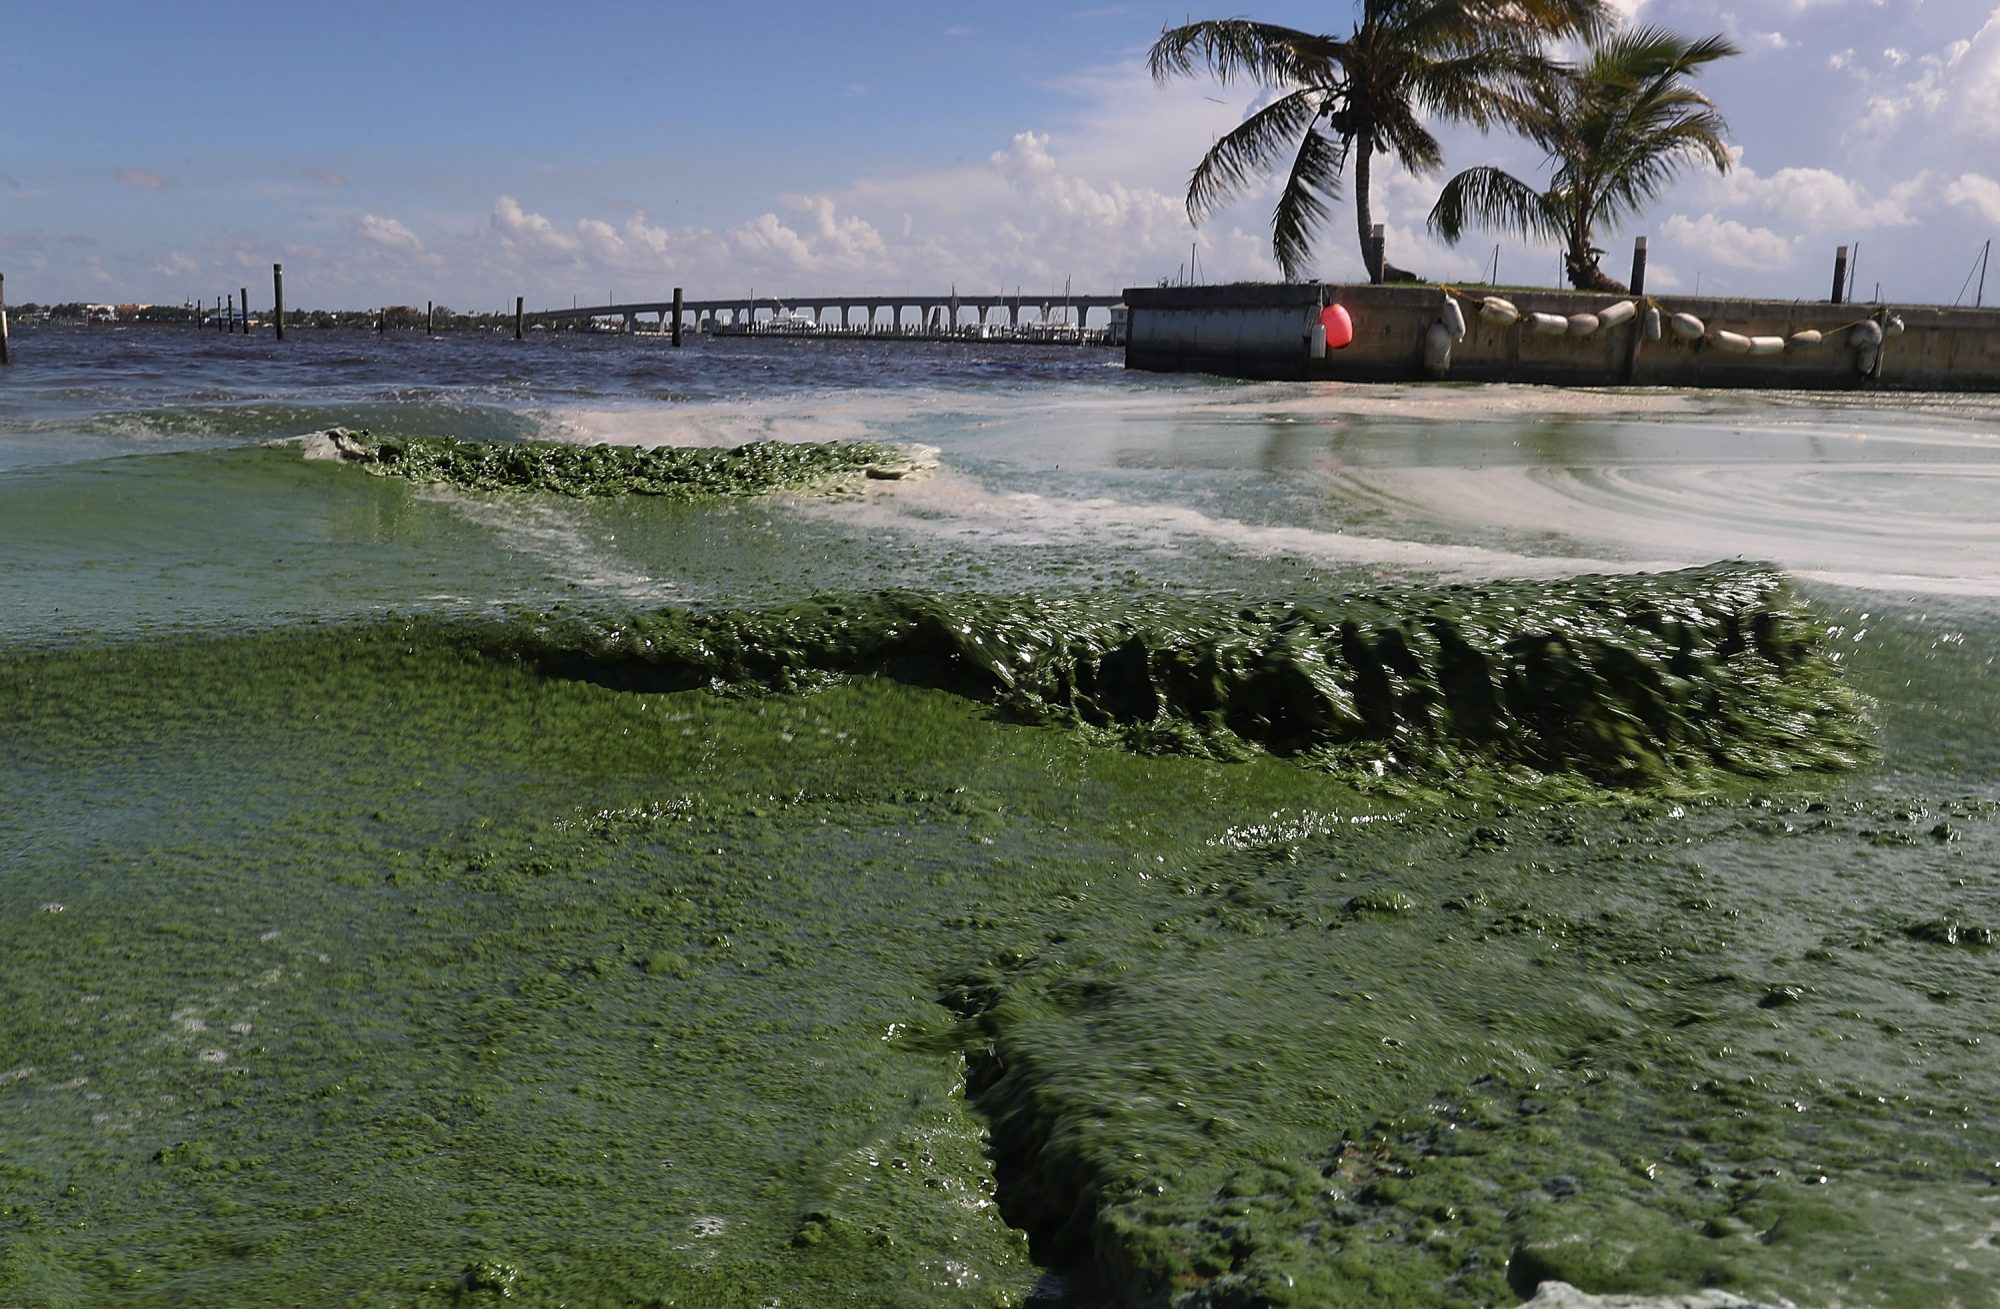 Toxic Algae Can Grow in Lakes and Ponds. Here's How to Protect Yourself